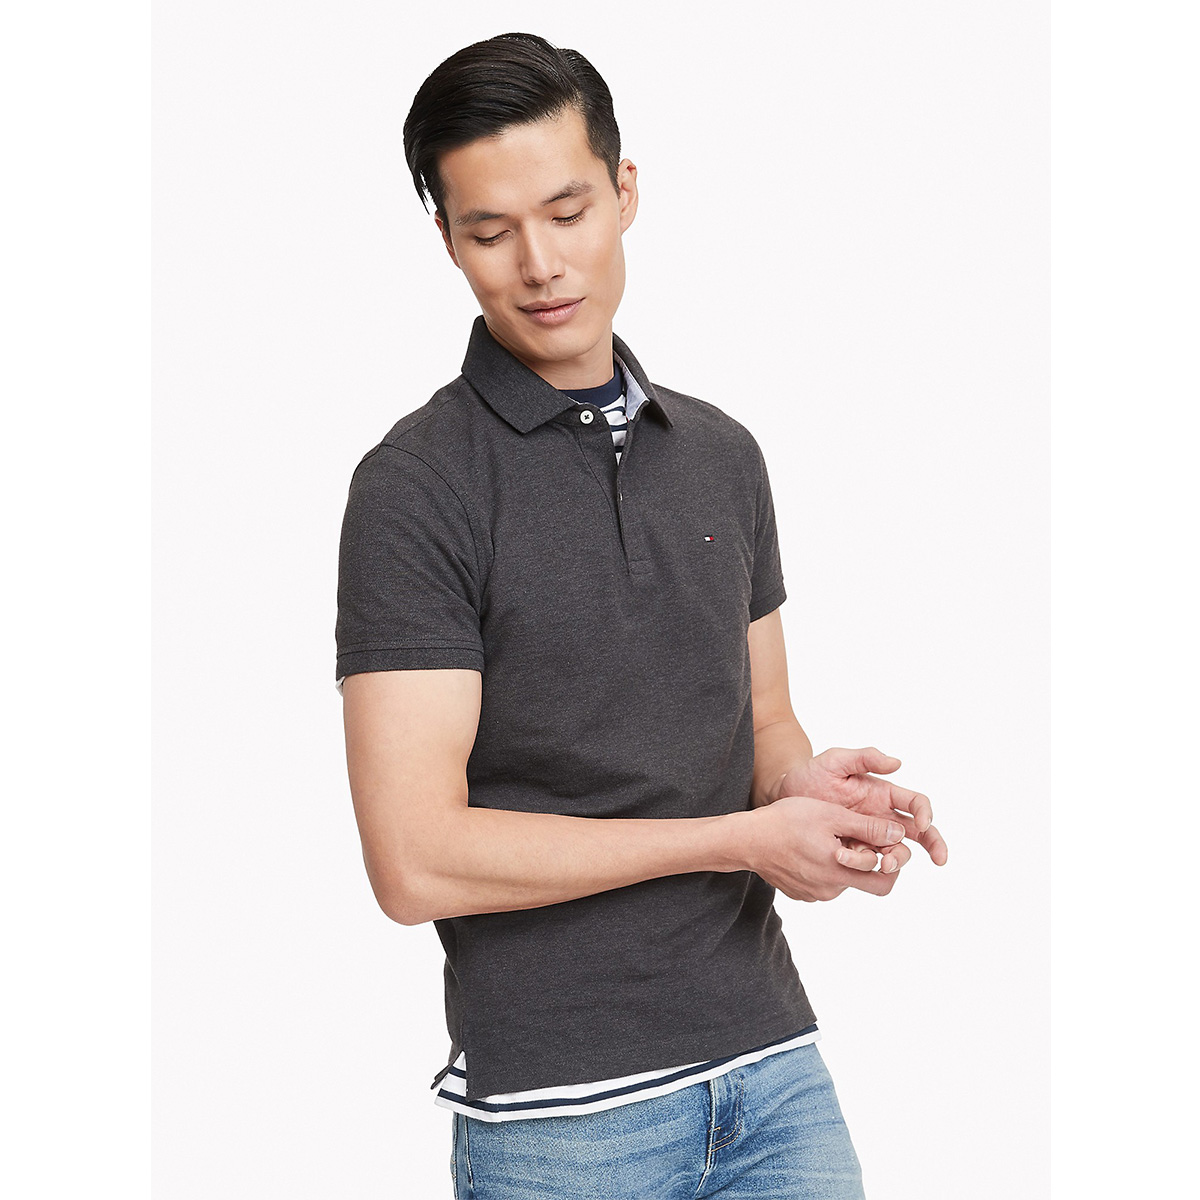 ao-polo-tommy-hilfiger-slim-fit-46